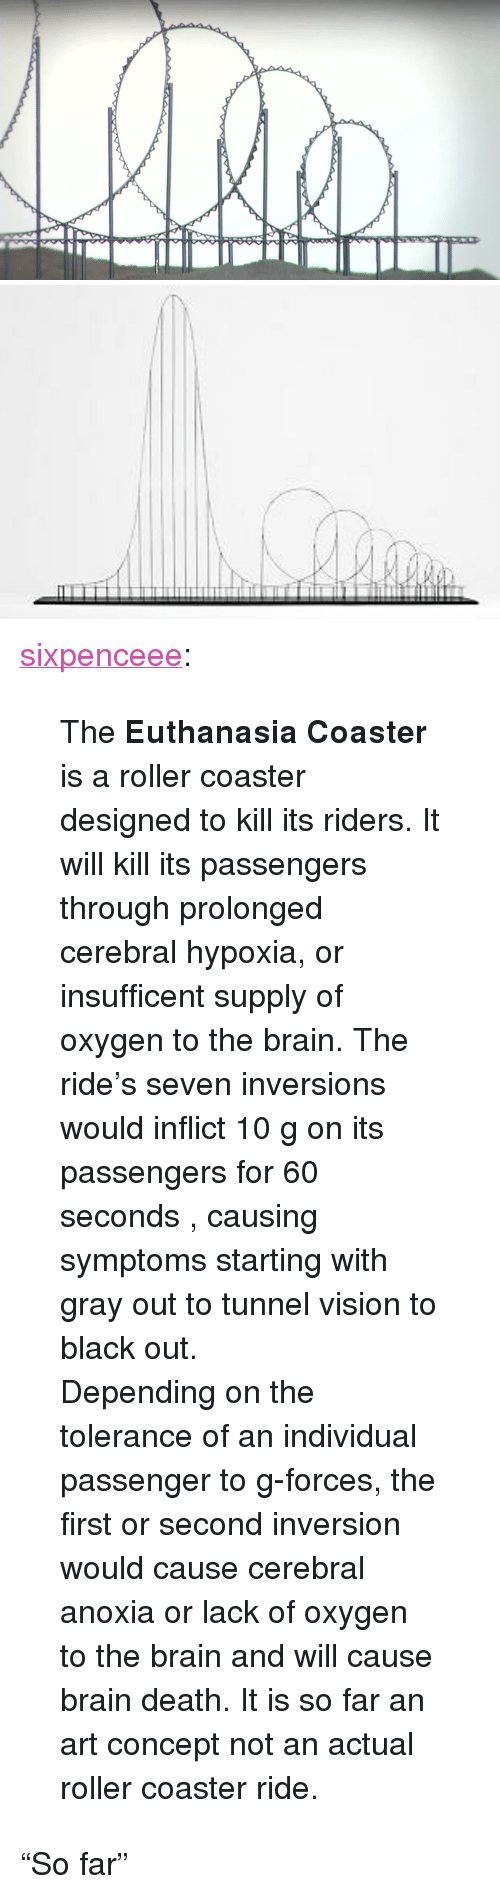 """Tunnel Vision: <p><a href=""""http://sixpenceee.com/post/103384972774/the-euthanasia-coaster-is-a-roller-coaster"""" class=""""tumblr_blog"""">sixpenceee</a>:</p>  <blockquote><p>The <strong>Euthanasia Coaster</strong> is a roller coaster designed to kill its riders. It will kill its passengers through<span>prolonged cerebral hypoxia, or insufficent supply of oxygen to the brain.</span><span>The ride's seven inversions would inflict 10 g on its passengers for 60 seconds , causing symptoms starting with gray out to tunnel vision to black out.</span></p> <p><span></span><span>Depending on the tolerance of an individual passenger to g-forces, the first or second inversion would cause cerebral anoxia or lack of oxygen to the brain and will cause brain death. It is so far an art concept not an actual roller coaster ride.</span><a class=""""mw-redirect"""" href=""""http://en.wikipedia.org/wiki/Cerebral_anoxia"""" title=""""Cerebral anoxia""""><br/></a></p></blockquote>  <p>&ldquo;So far&rdquo;</p>"""